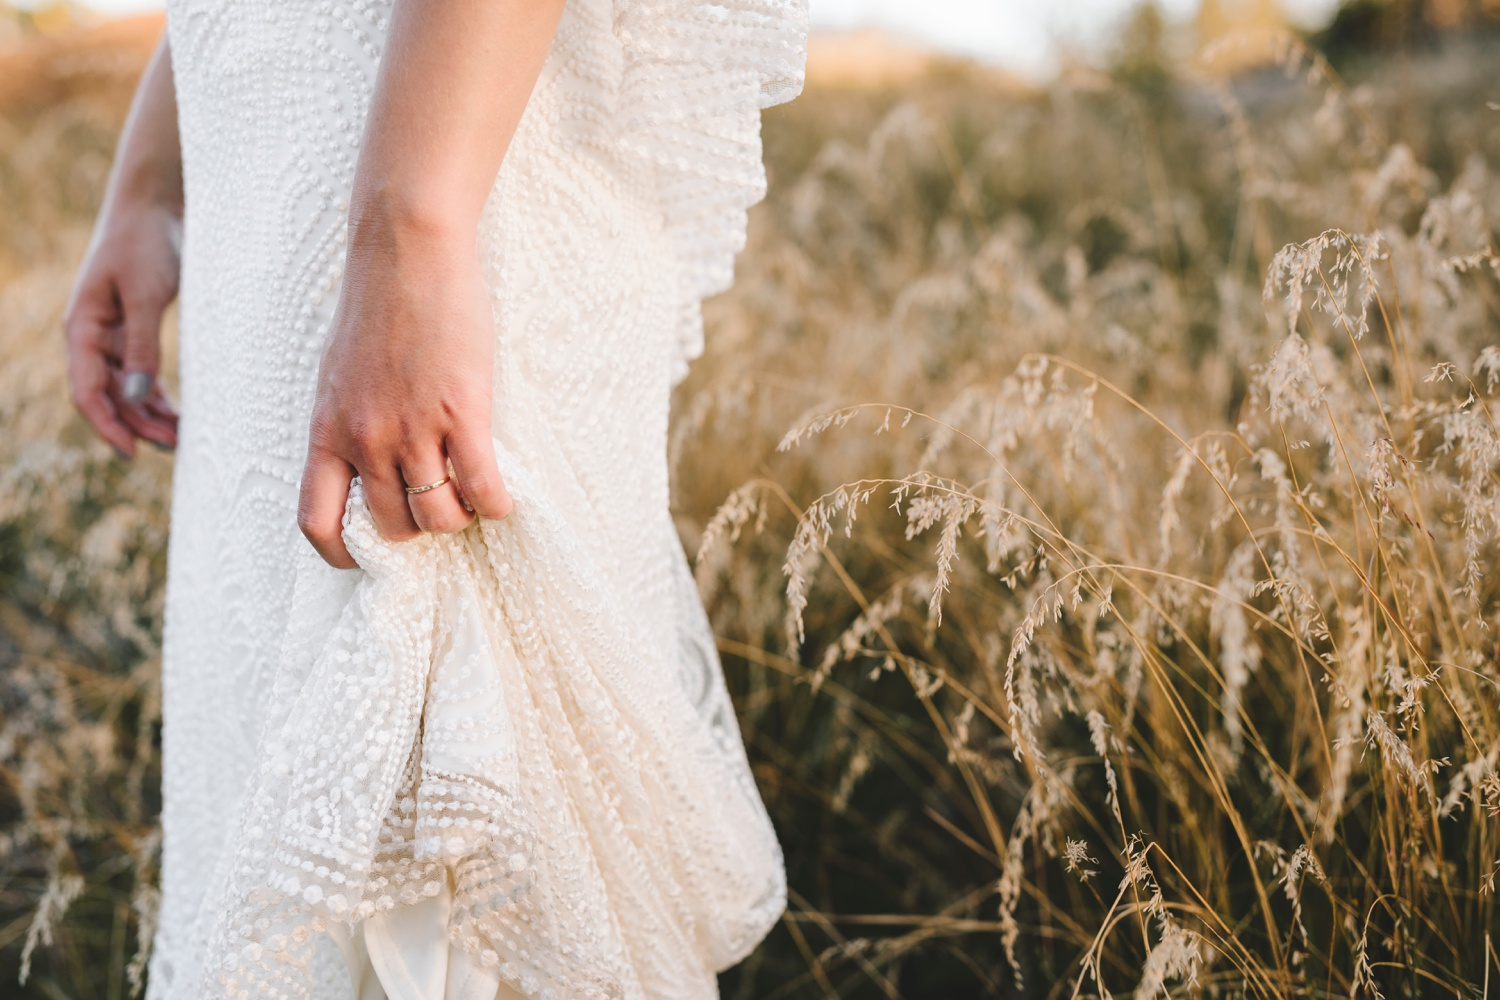 charlie_ray_photography_runaway_romance_elopement_emily_moon_plett_simple_boho_wedding_south_africa_bohemium_0092.jpg